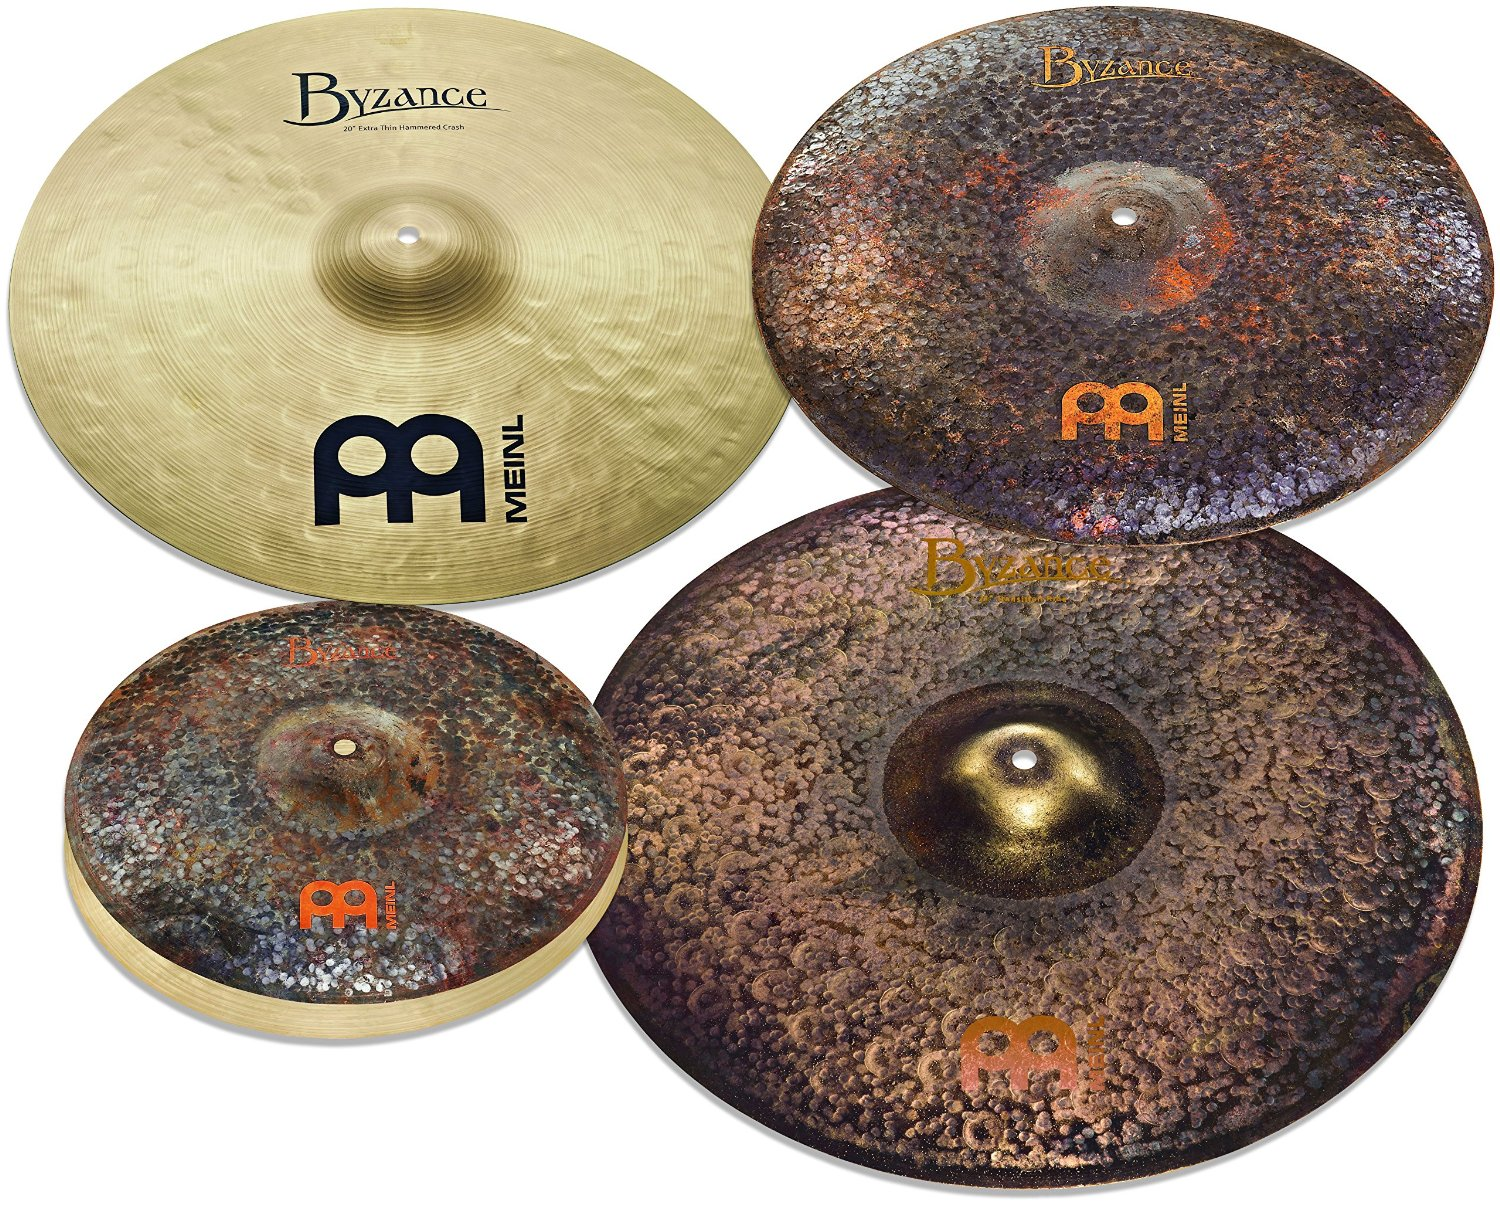 "Meinl Cymbals MJ401+18 Mike Johnston Pack Byzance Cymbal Box Set with Free 18"" Byzance Extra Dry Thin Crash (VIDEO)"